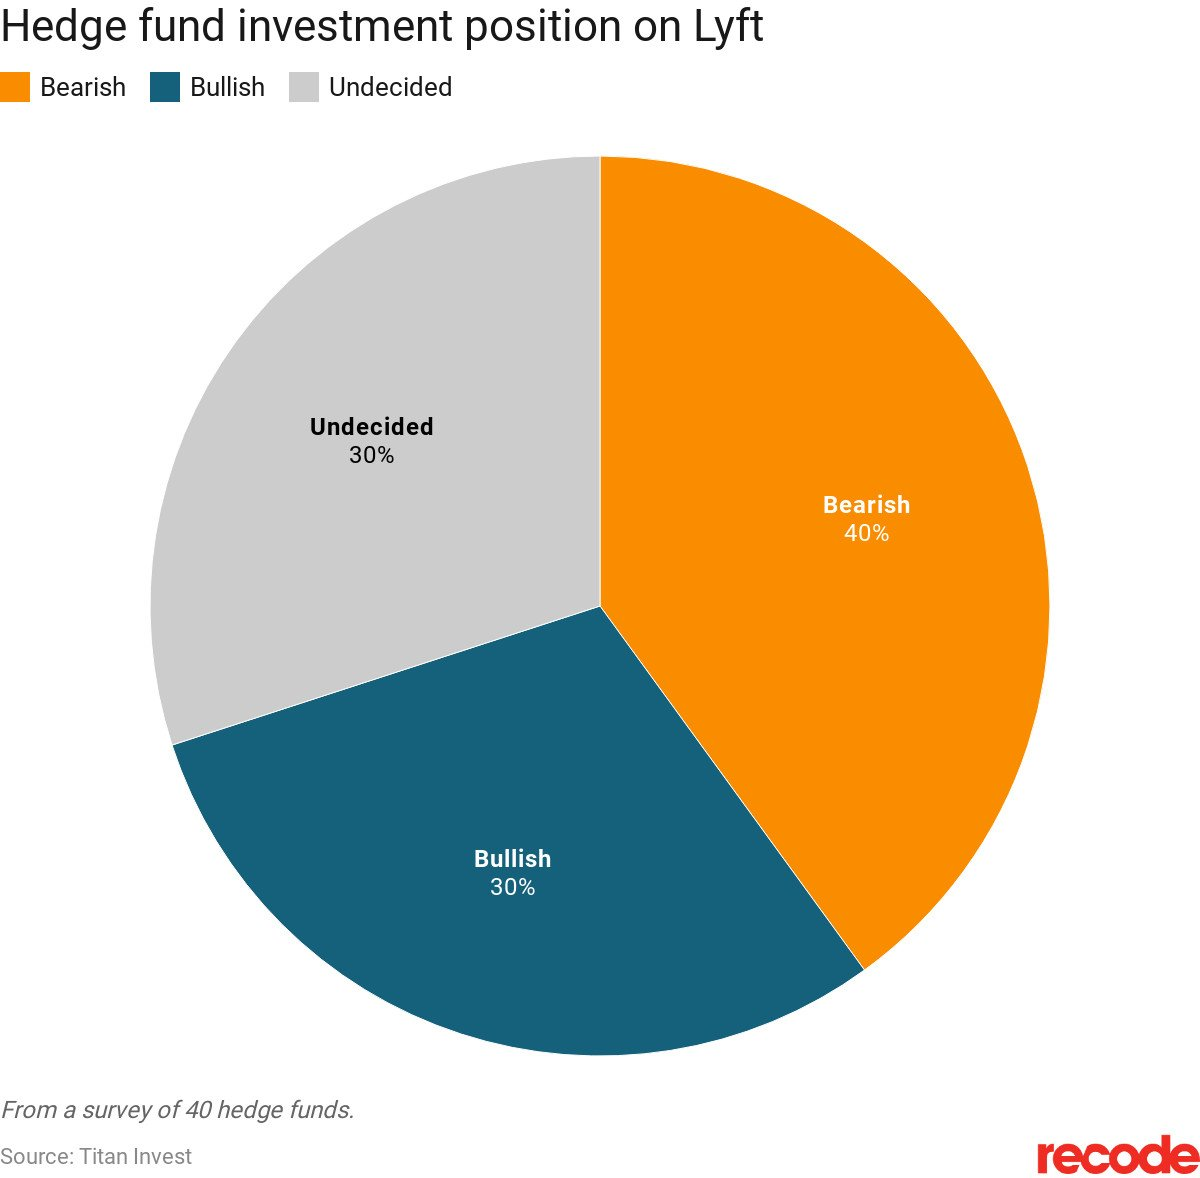 Even hedge funds investing in Lyft don't believe in its long-term prospects